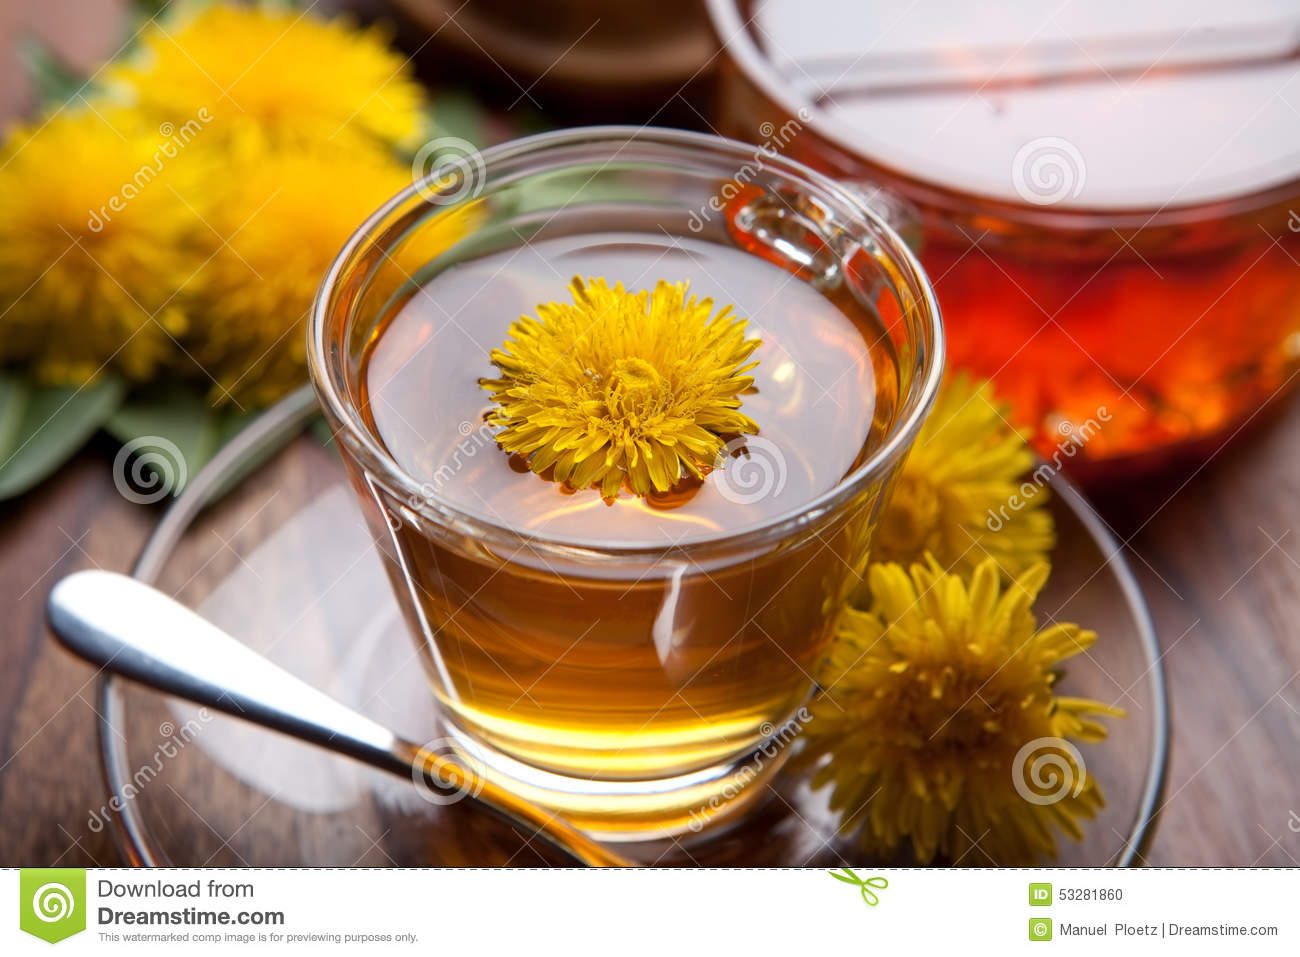 Download Herbal Tea And Honey Made Of Dandelion With Yellow Blossom On Wooden Table Stock Photo - Image of green, aromatherapy: 53281860